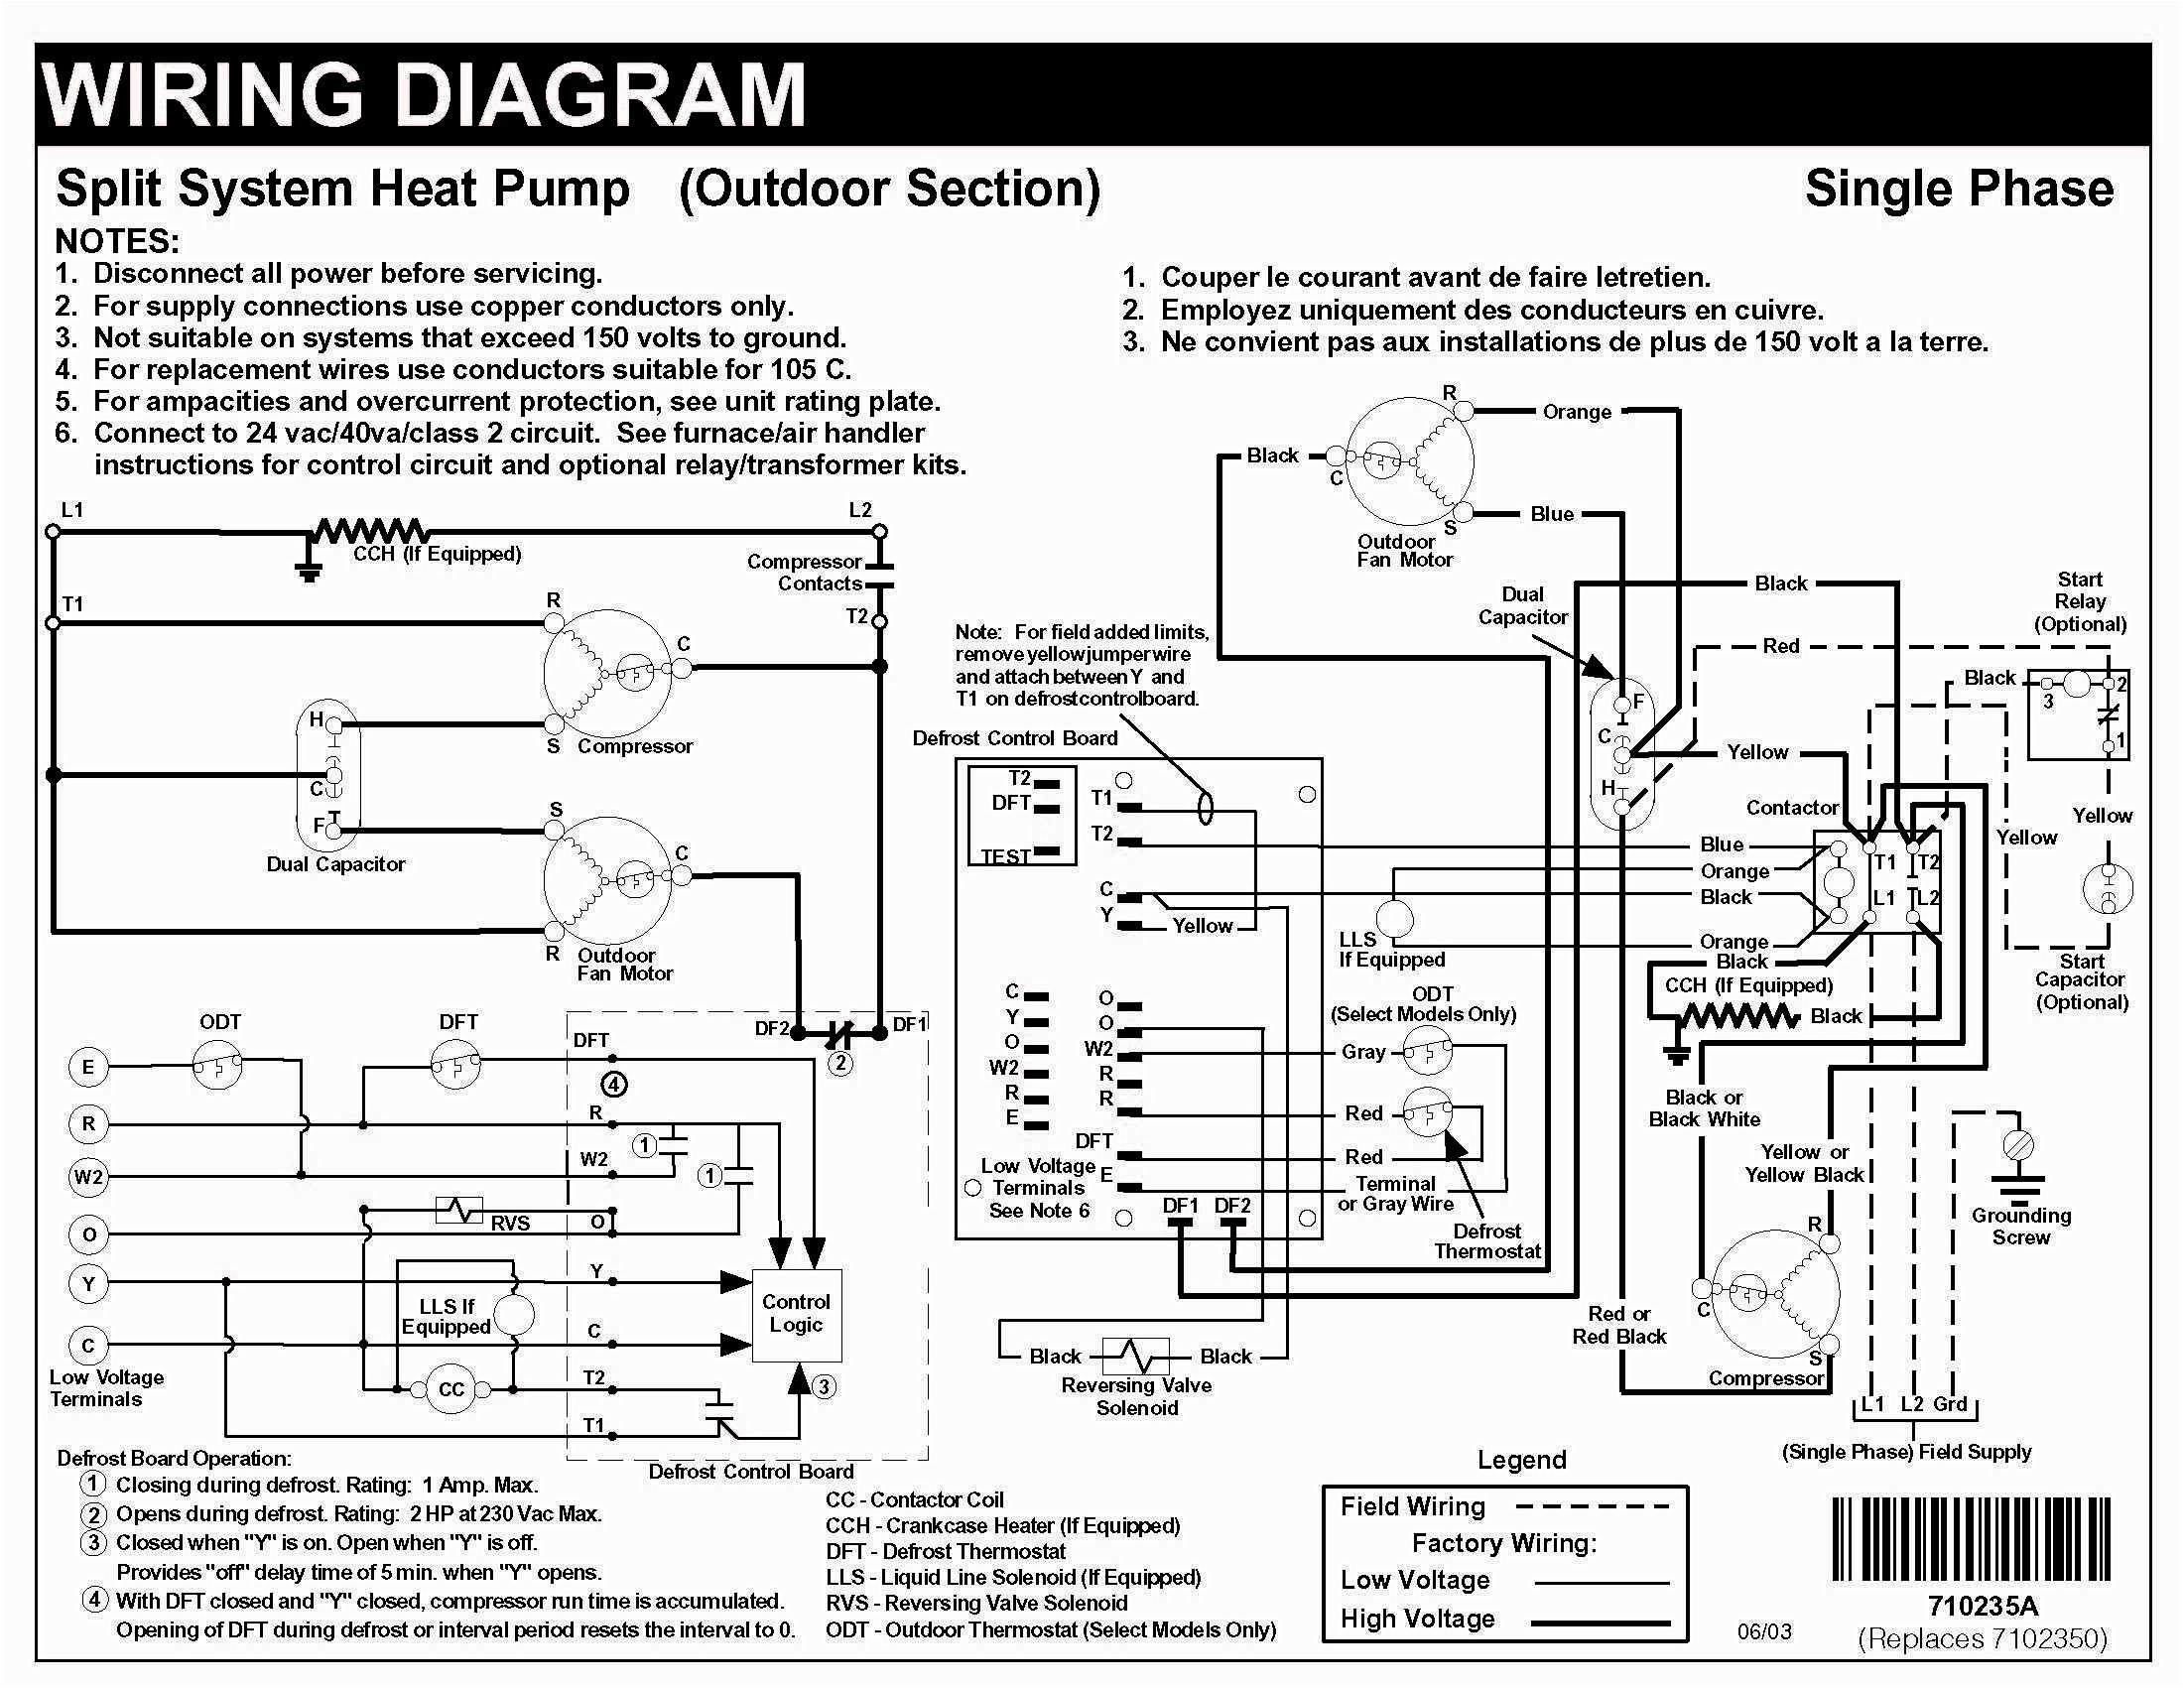 75 kva transformer wiring diagram Download-Furnace Transformer Wiring Diagram WIRING DIAGRAM Pleasing 75 Kva 19-j